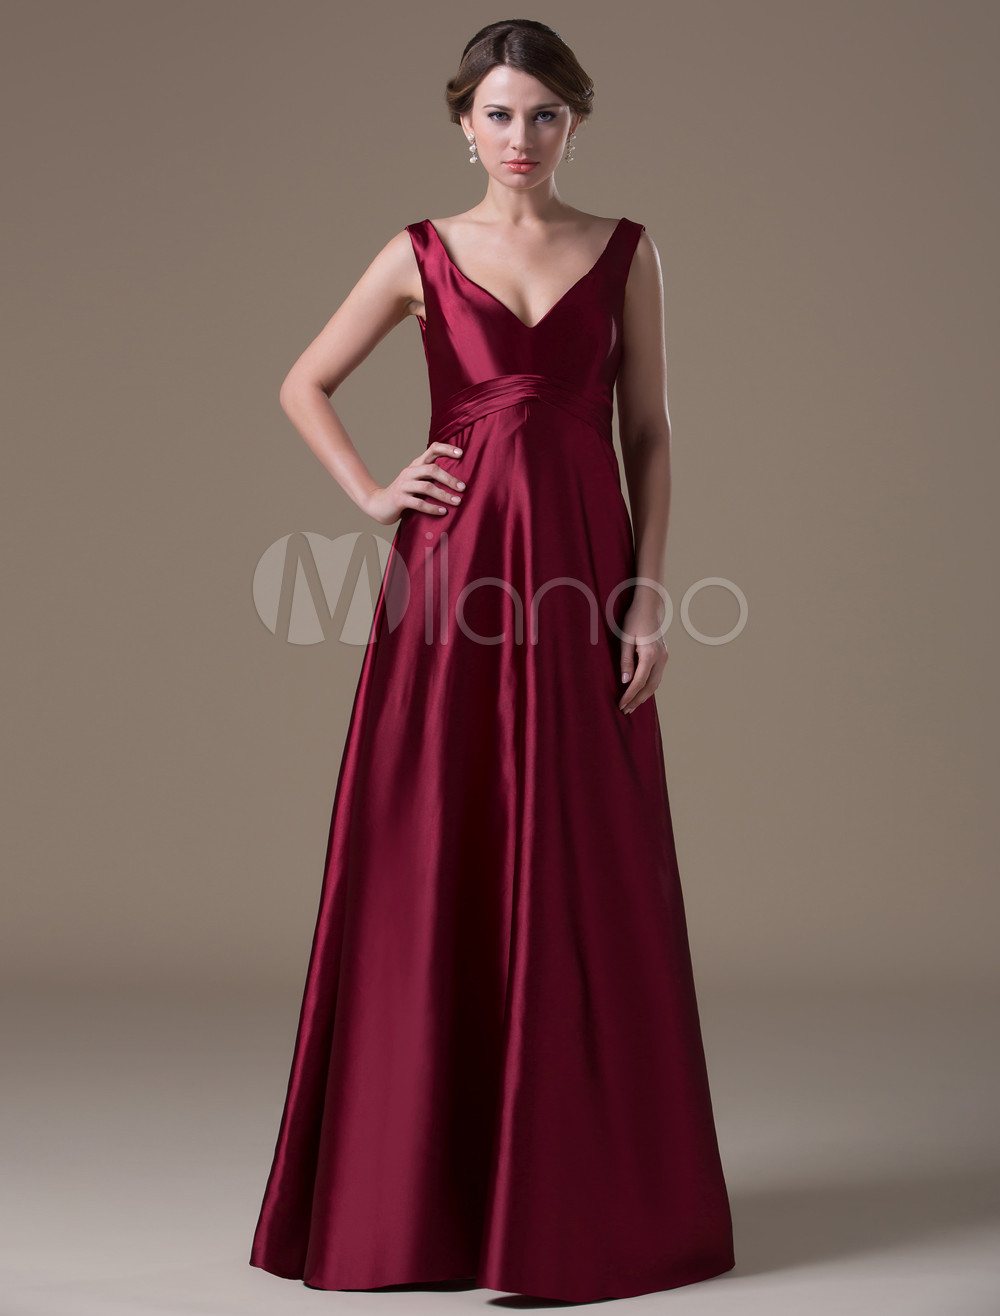 Burgundy Hot Spandex Satin Floor-length Maternity Bridesmaid Dress